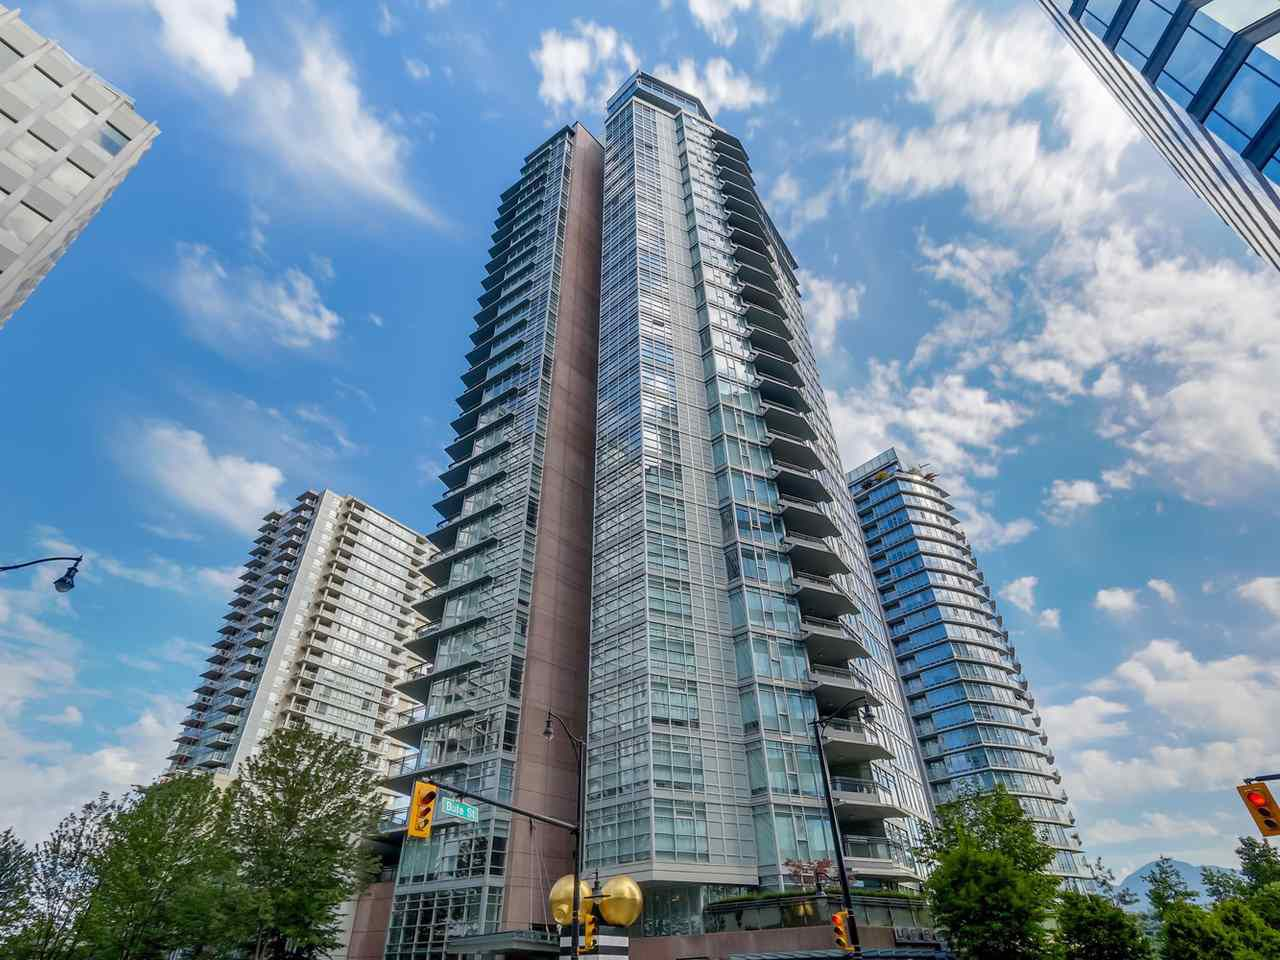 """Main Photo: 404 1205 W HASTINGS Street in Vancouver: Coal Harbour Condo for sale in """"CIELO"""" (Vancouver West)  : MLS®# R2128643"""